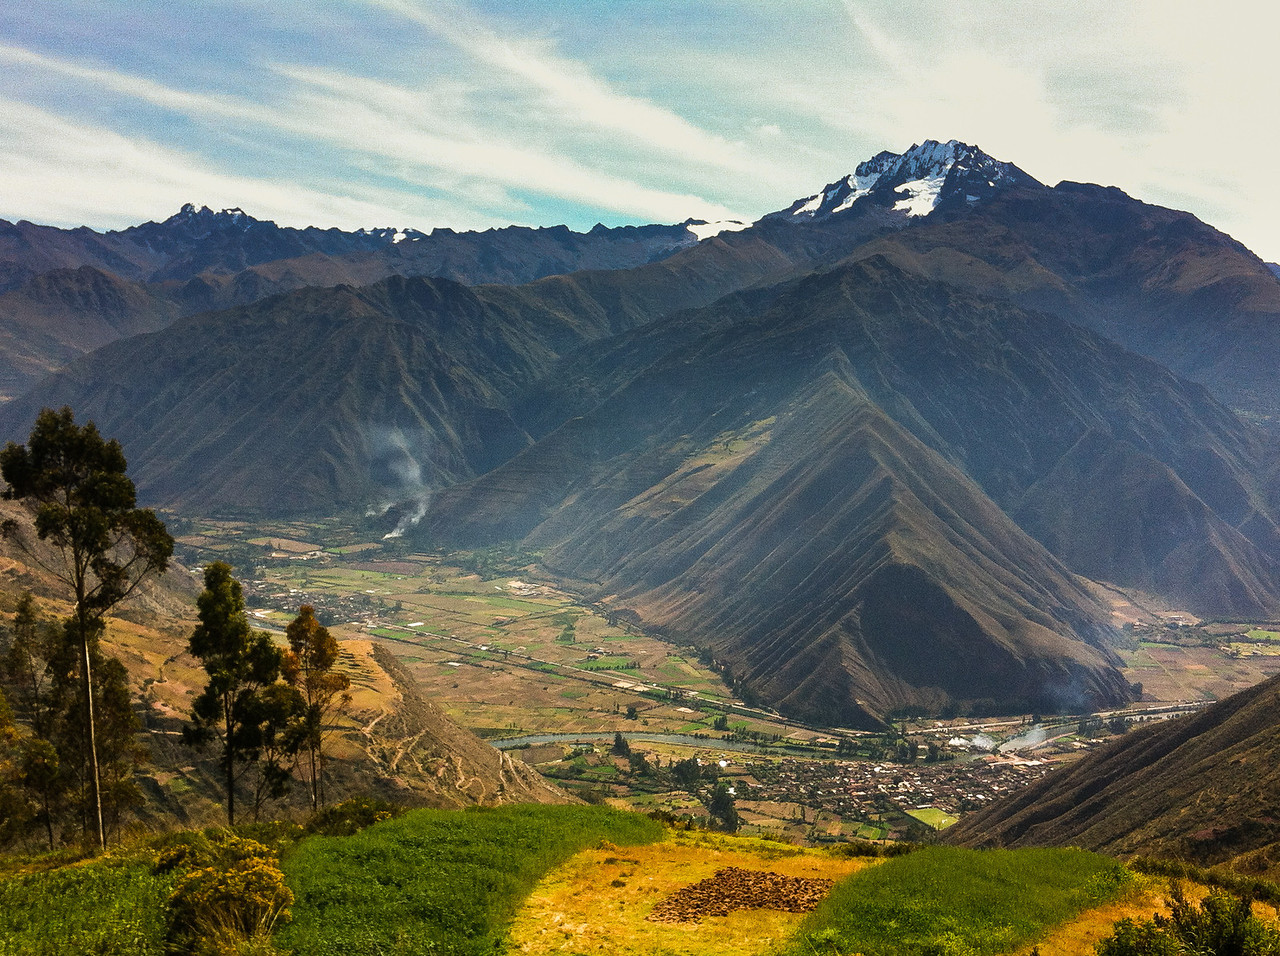 """The Sacred Valley of the Incas or Urubamba Valley is a valley in the Andes of Peru, close to the Inca capital of Cusco and below the ancient sacred city of Machu Picchu. It is located in the modern Peruvian region of Cusco. In colonial documents it is referred to as the """"Valley of Yucay"""", according to recent researches it encompasses the heartland of the Inca Empire.[1]"""